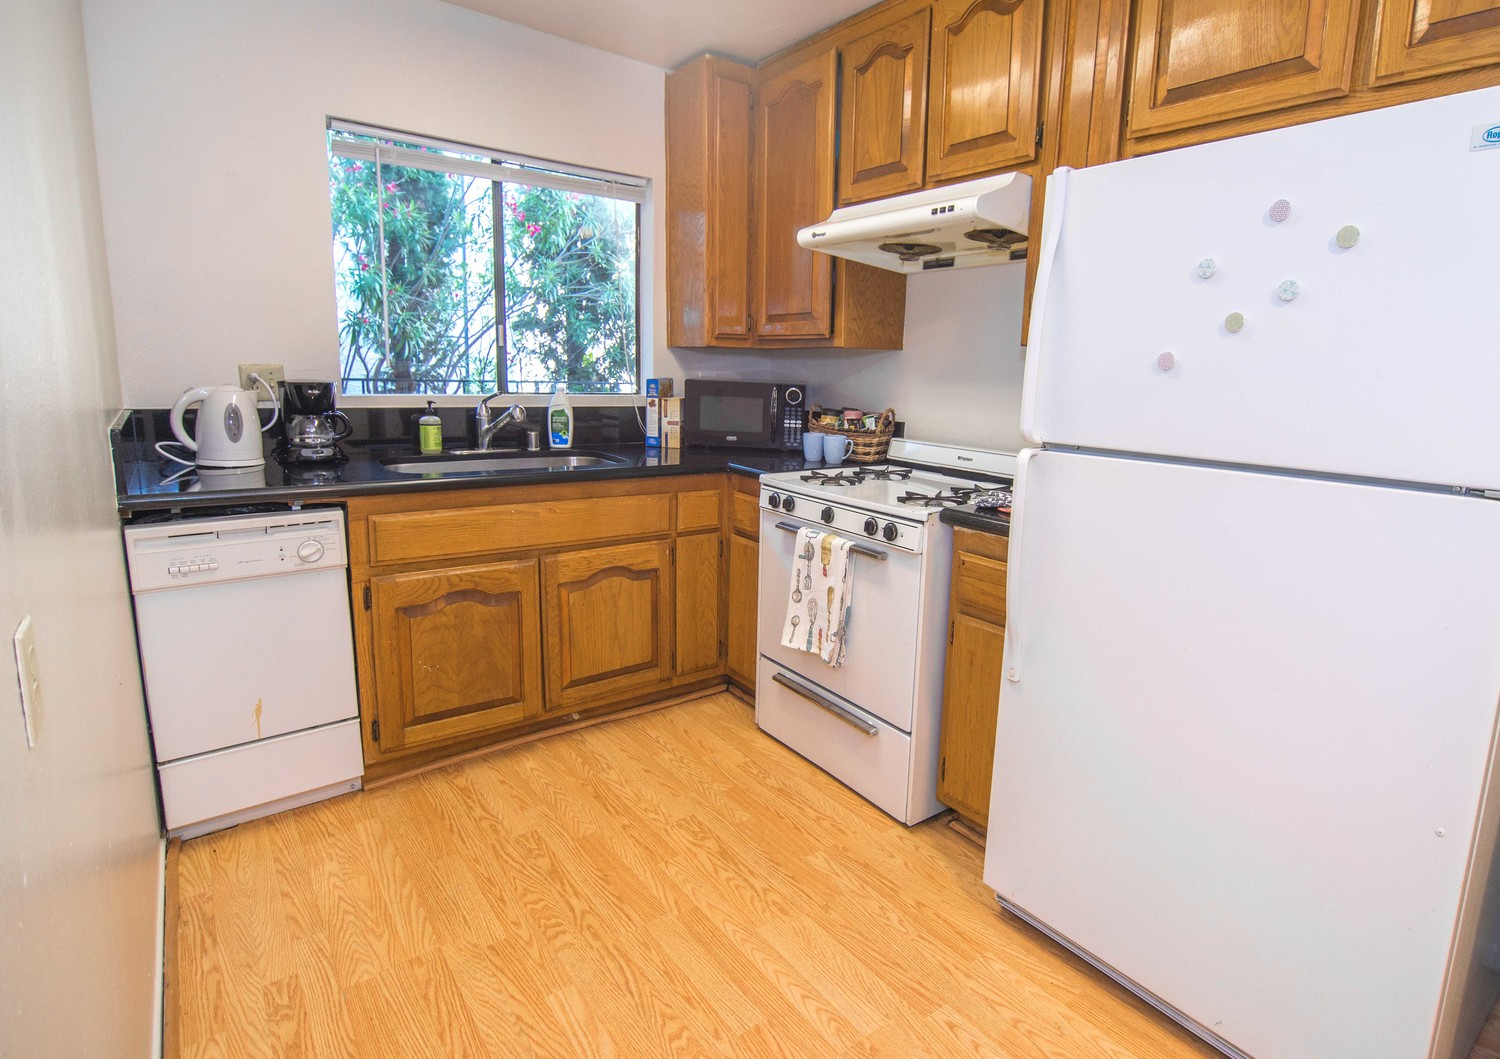 2 bd 2 bath shared room for rent at  Pelham Ave Apts